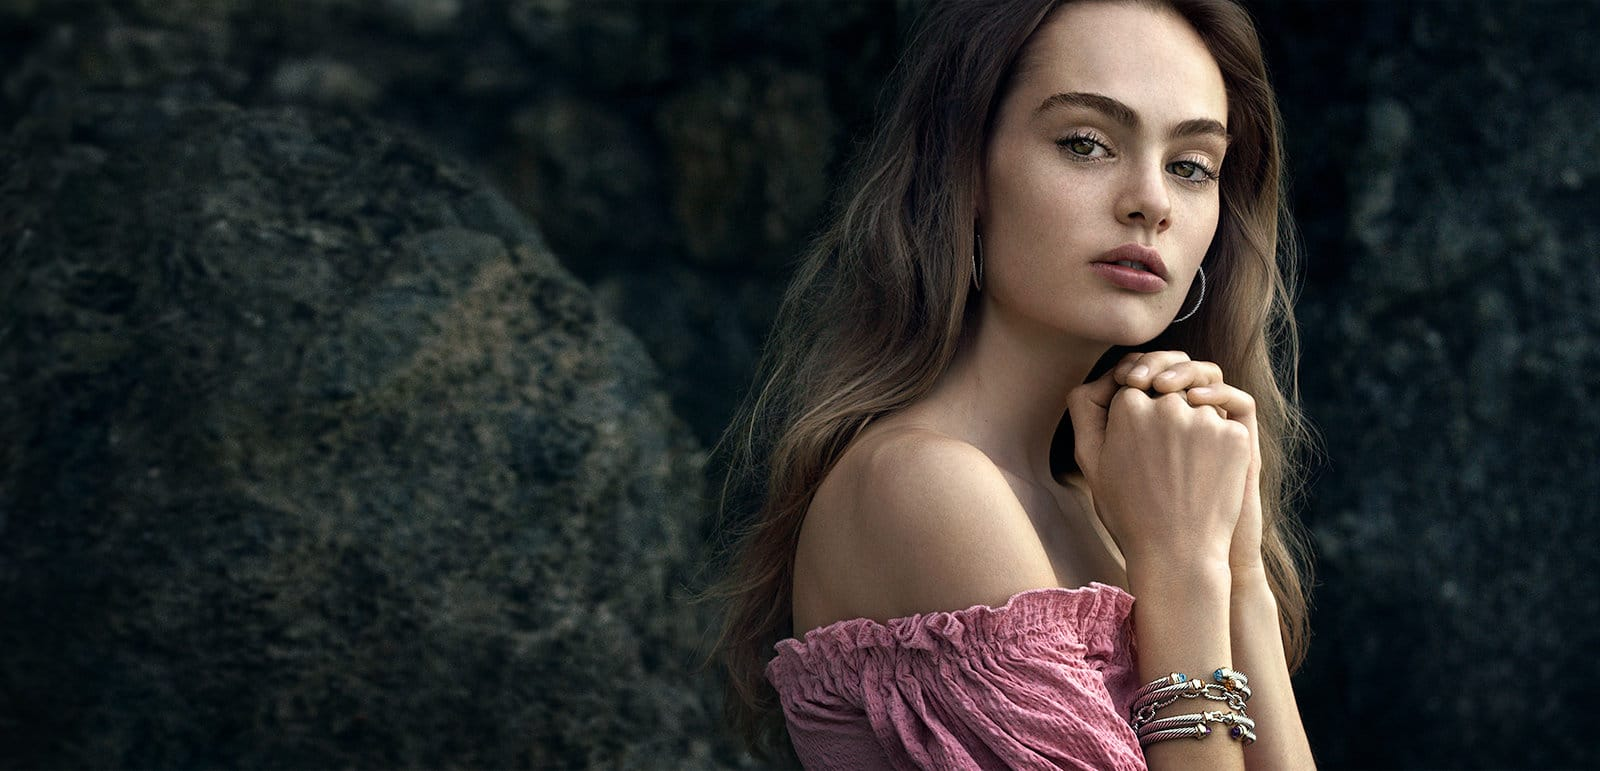 A color photo of model Florence Clapcott standing in front of dark rocks while wearing a pink off-the-shoulder top, David Yurman sterling-silver hoop earrings, and a stack of David Yurman link-chain and Cable bracelets in sterling silver with 18K yellow gold accents and colored gemstones.